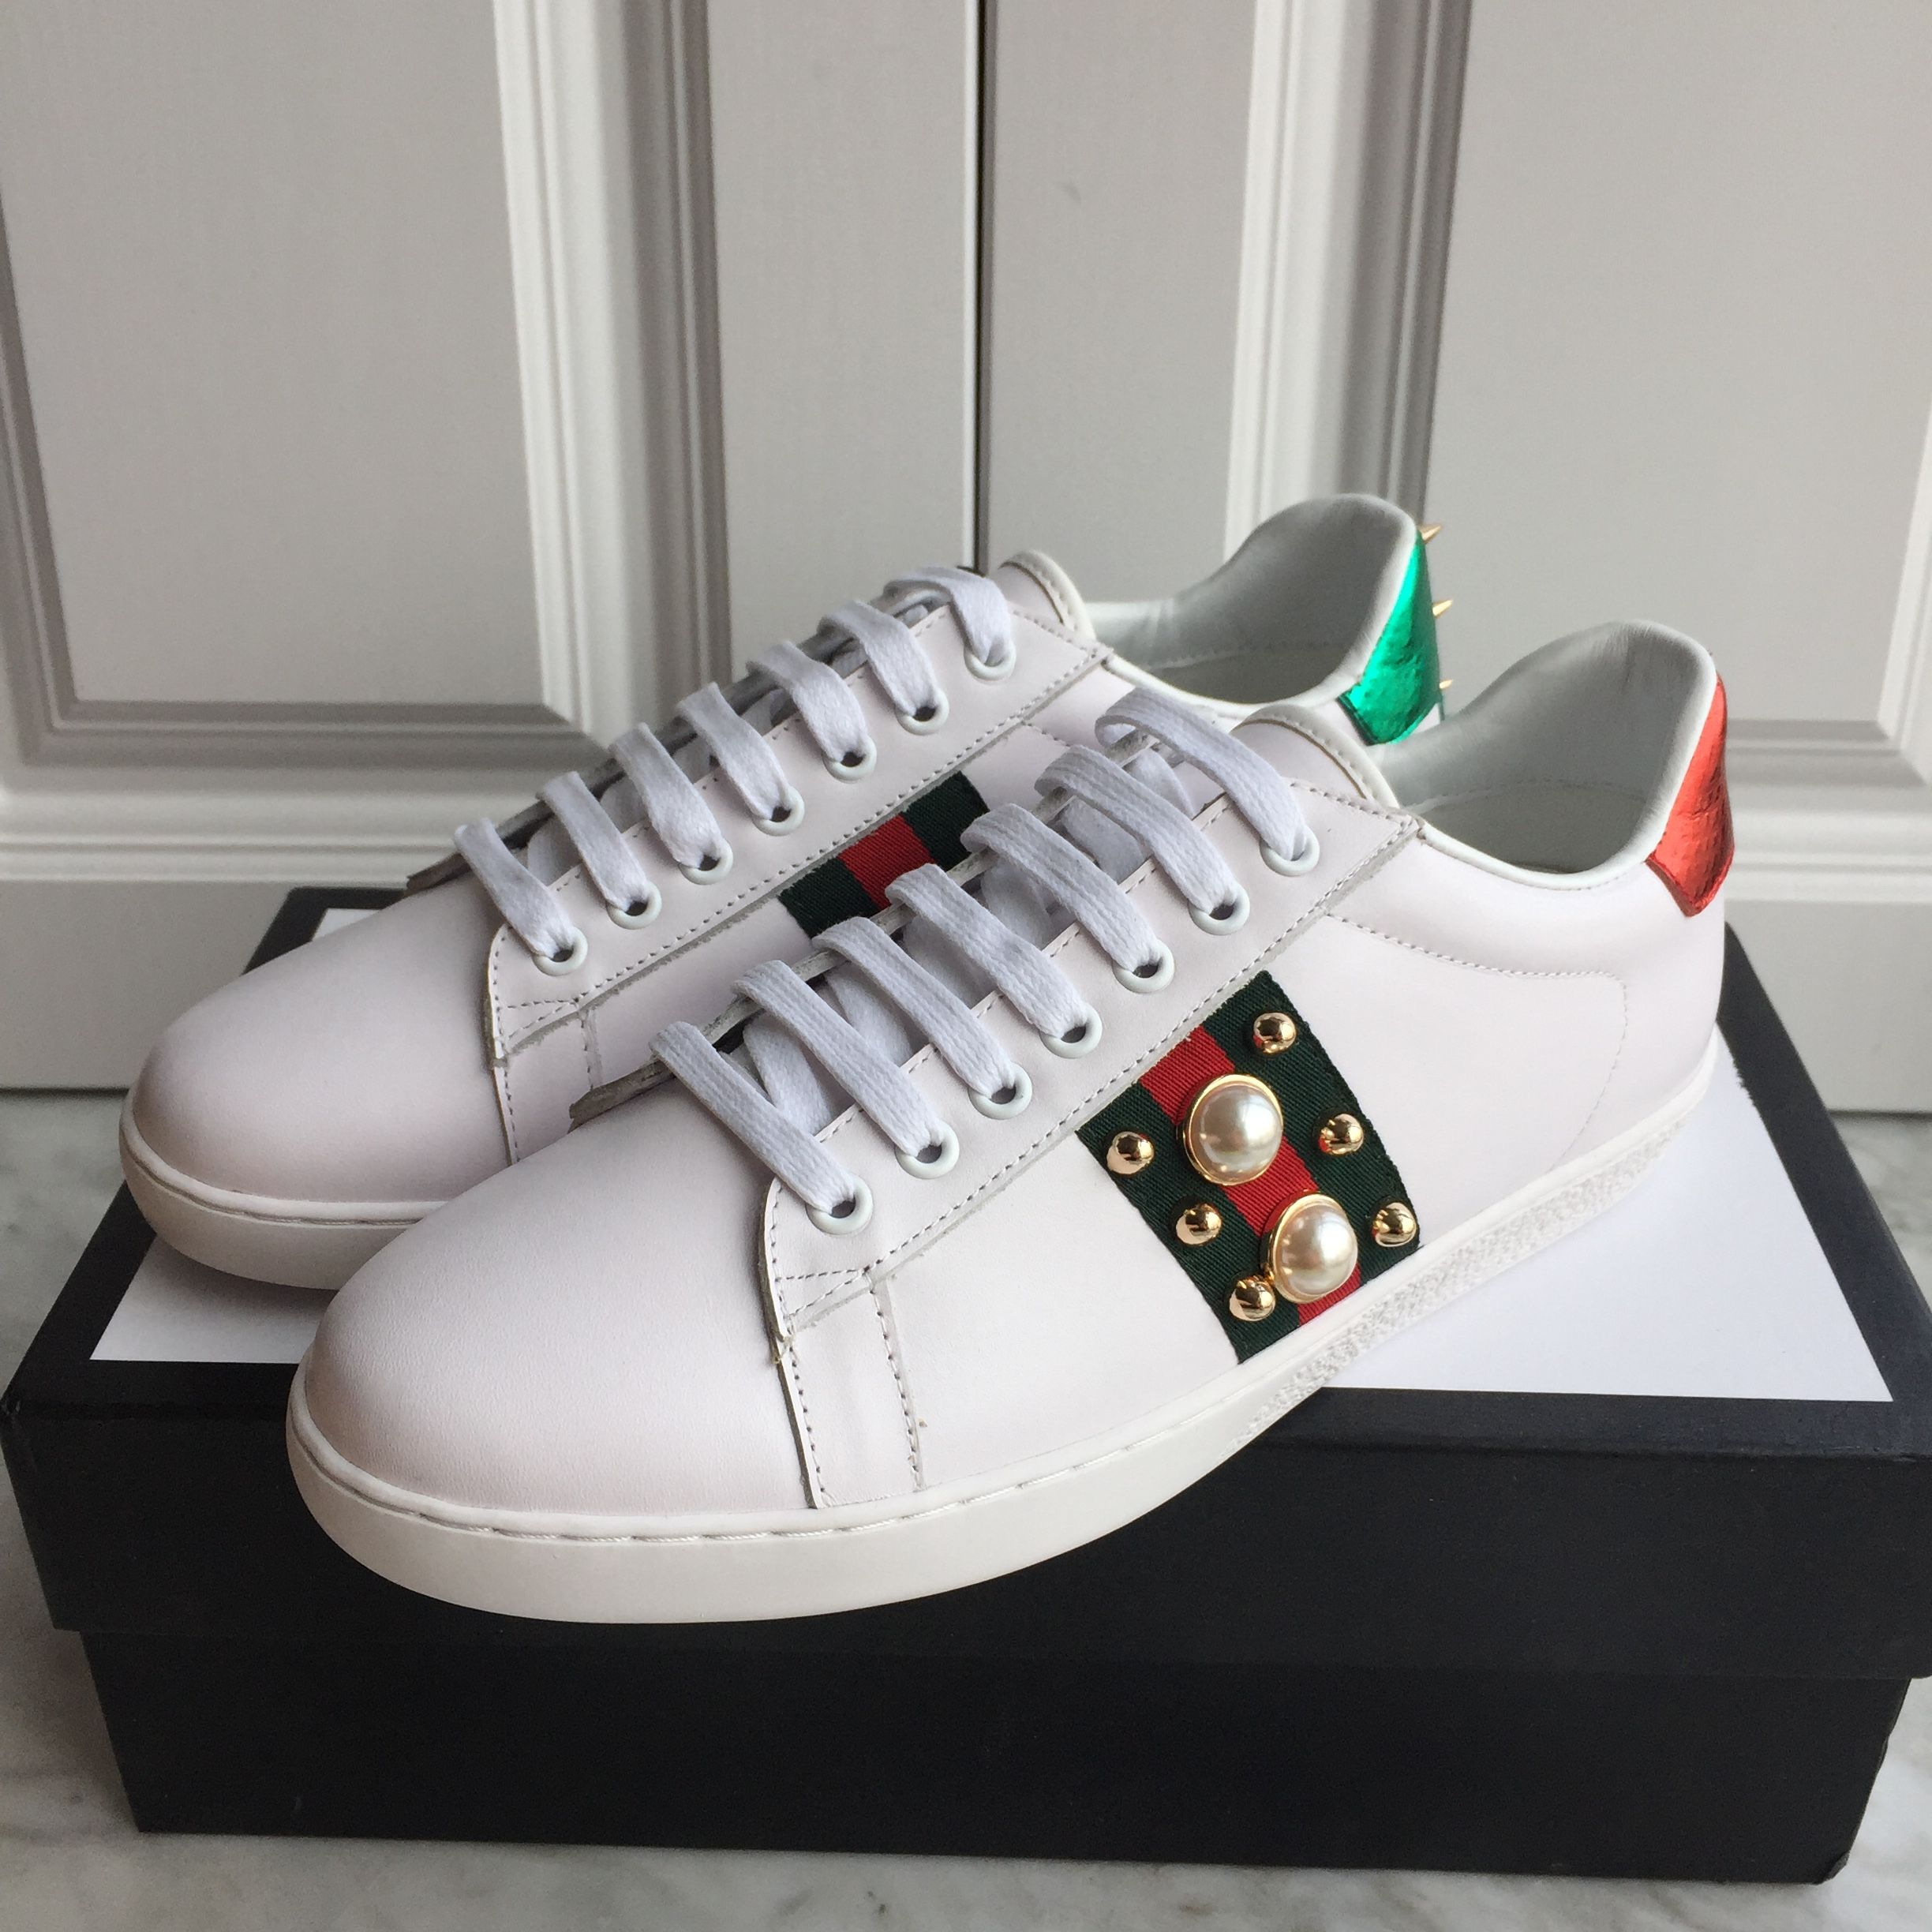 c21296f5a5f Gucci unisex woman man white shoes leather sneakers pearl   studs design